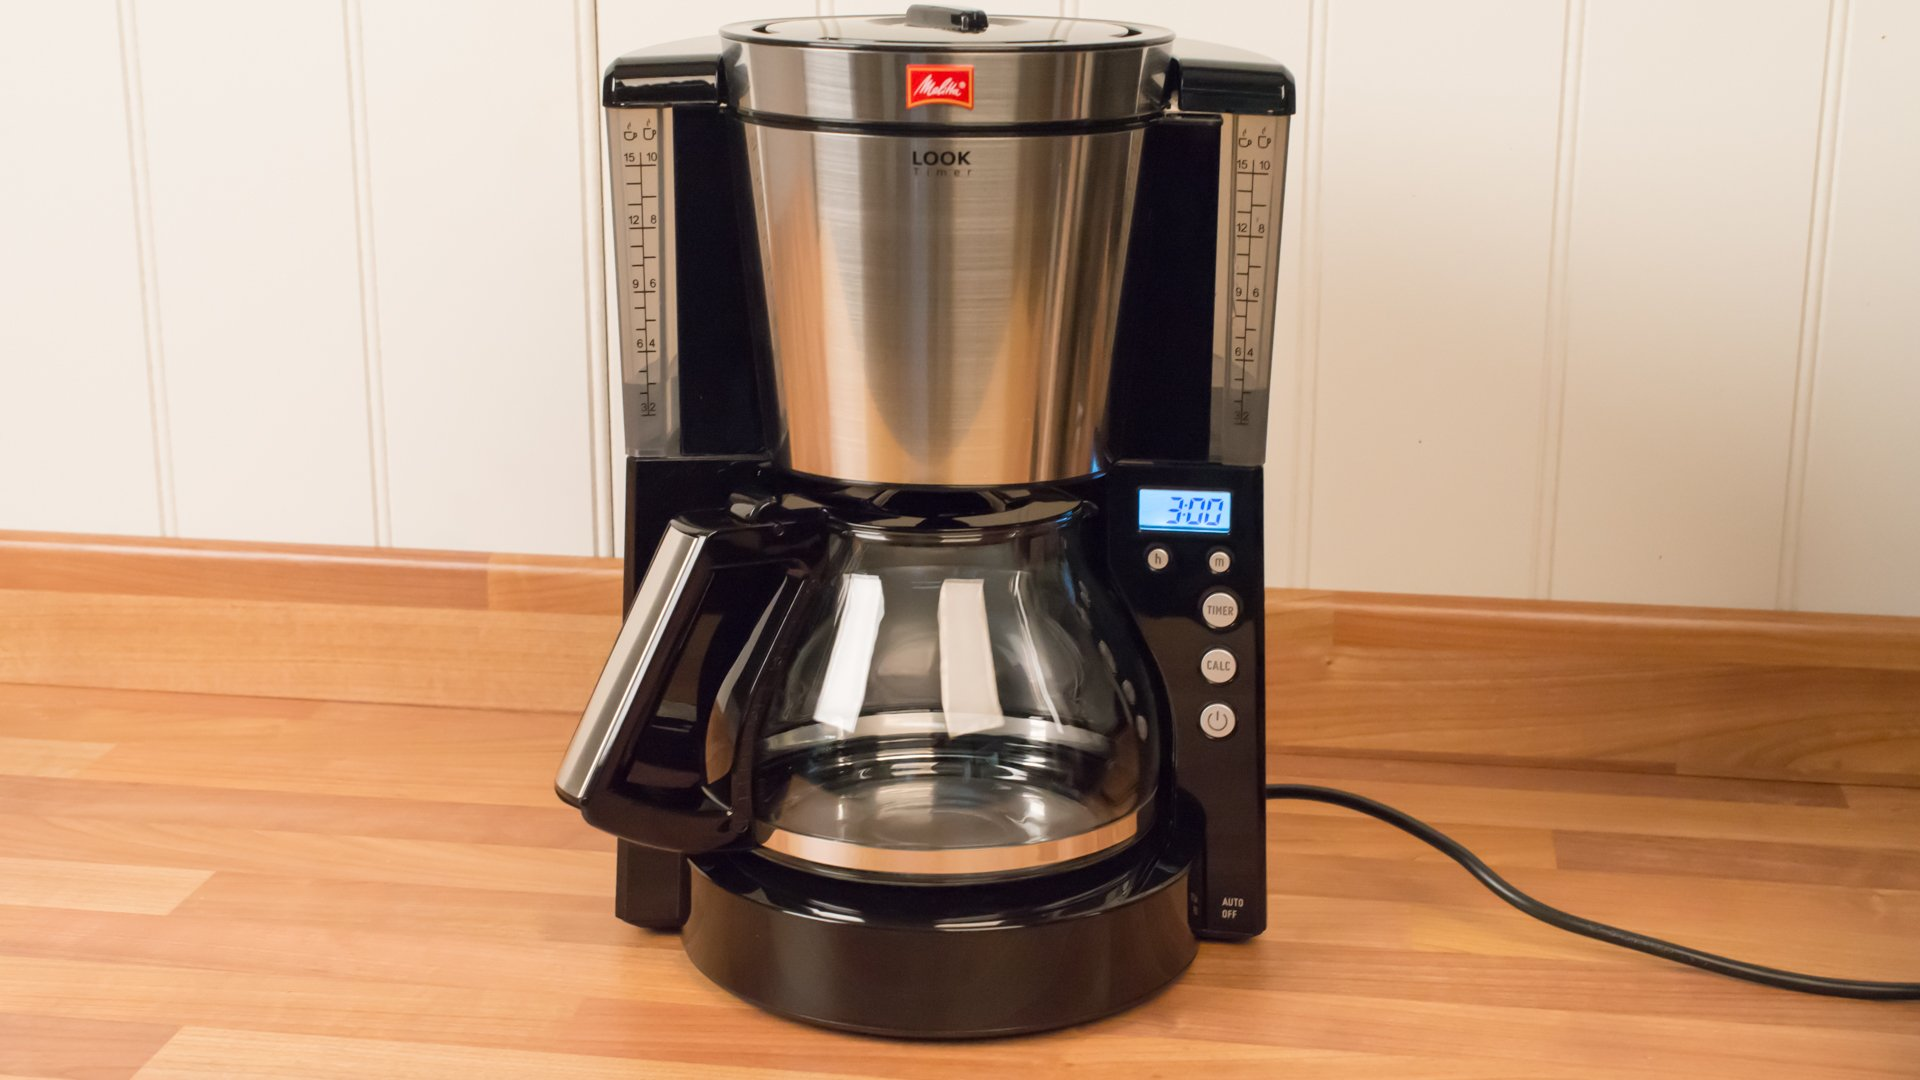 Melitta Look Timer review | Expert Reviews